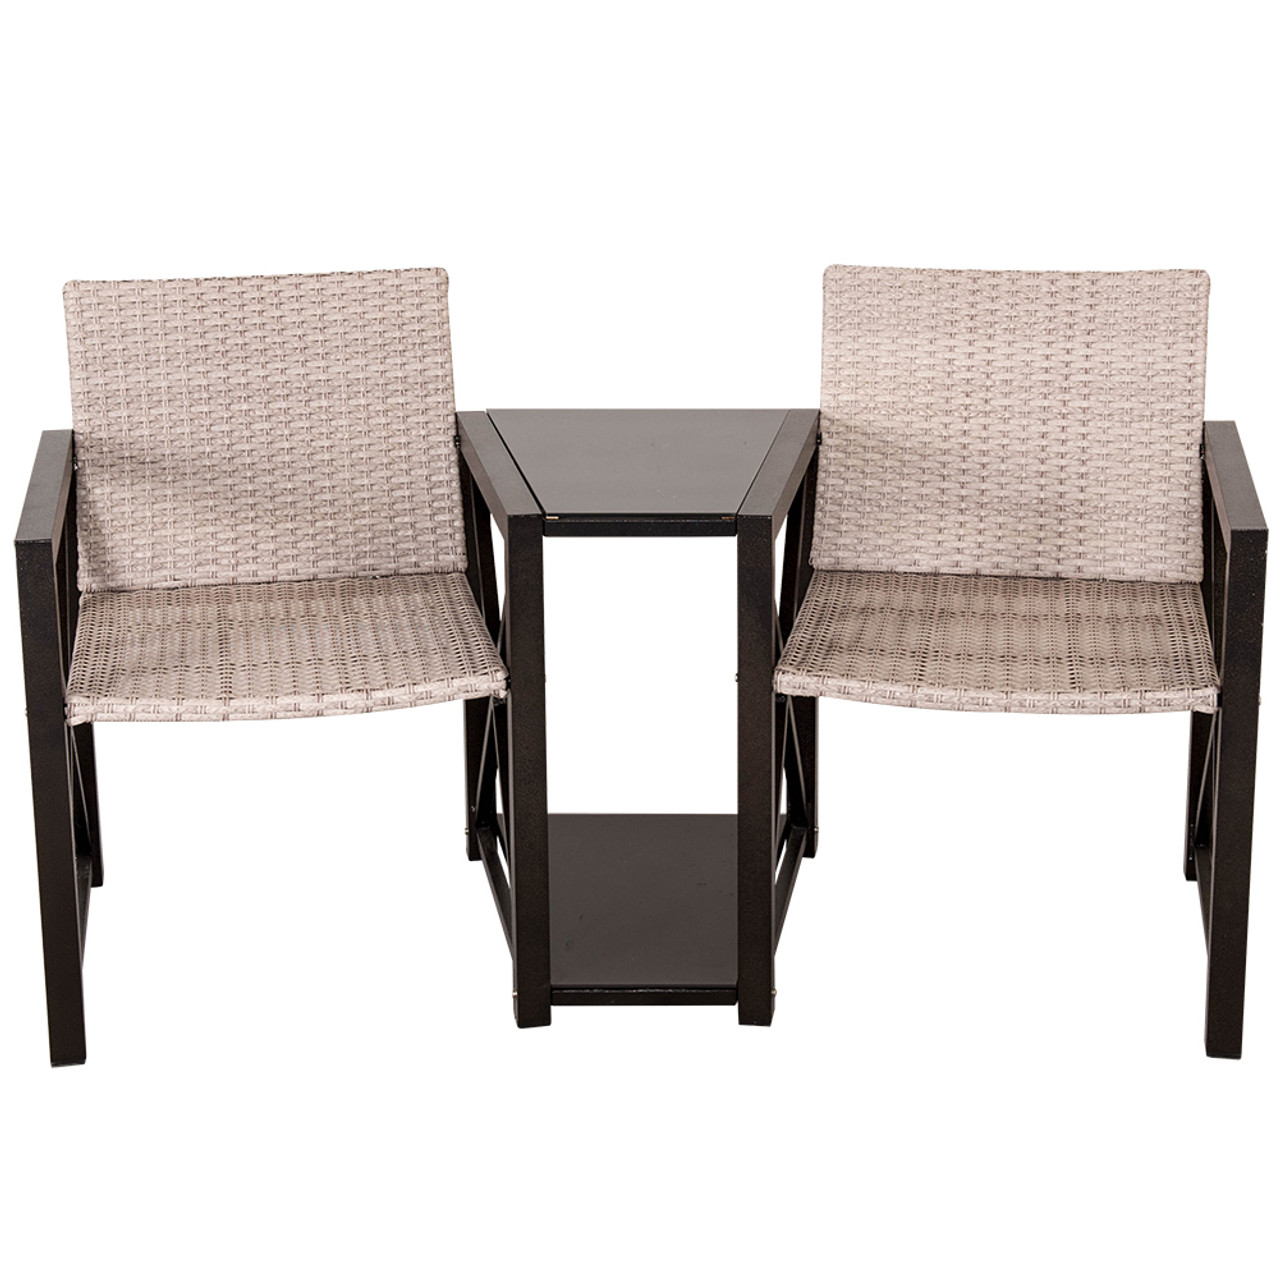 Outdoor Wicker Table And Chairs outdoor furniture - wicker furniture - sundale outdoor